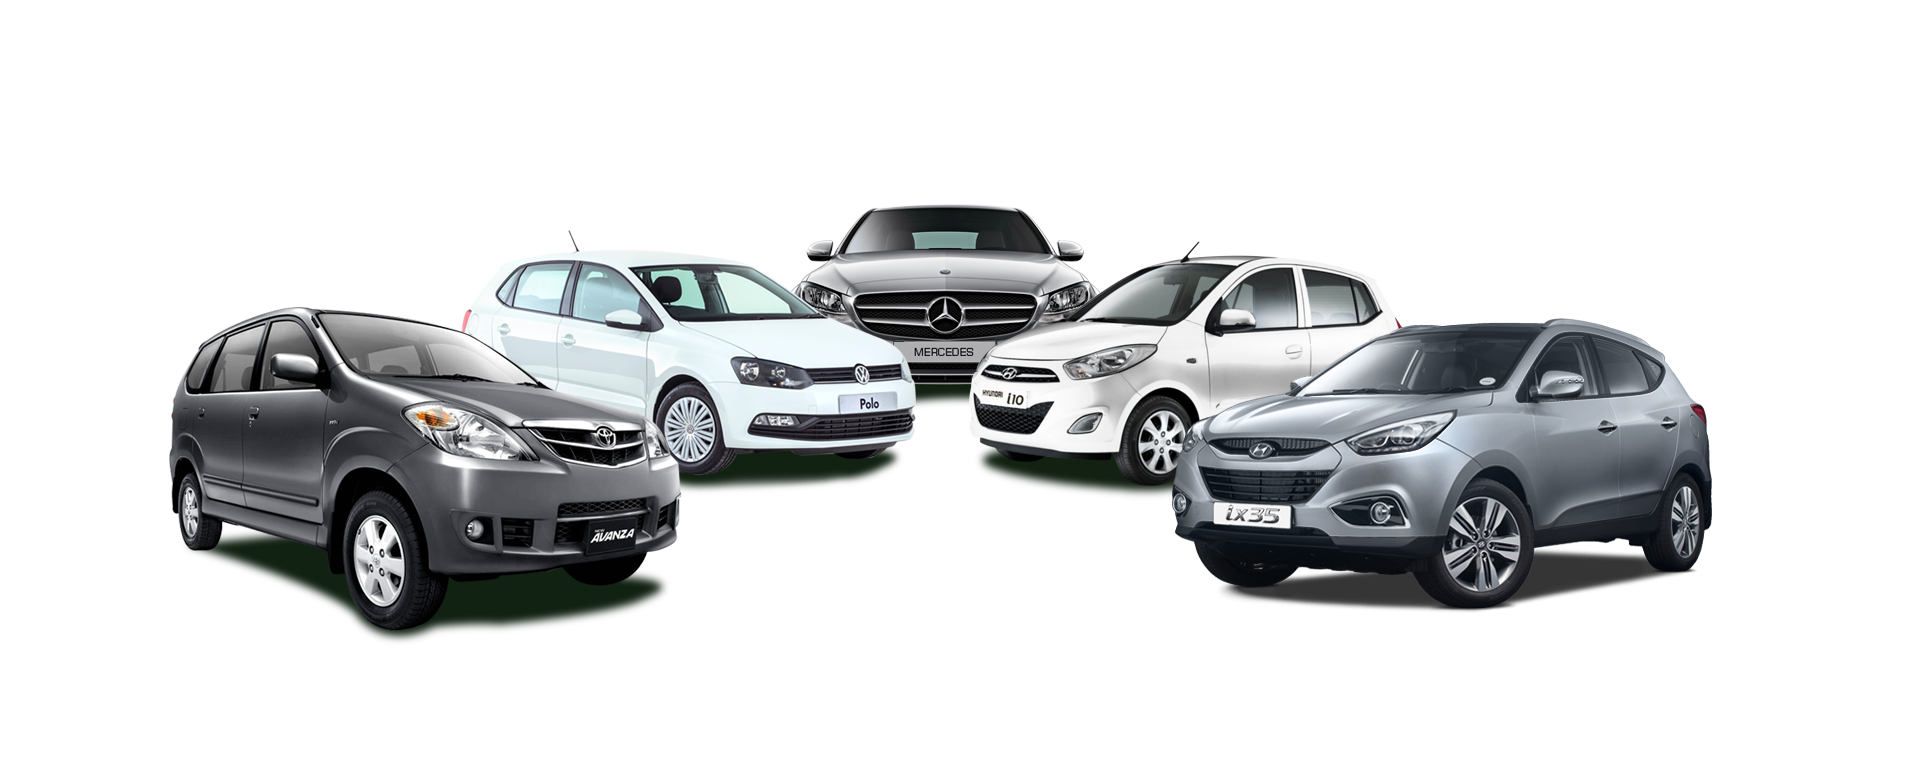 5 Splendid Tips to Choose a Reliable Car Rental Company